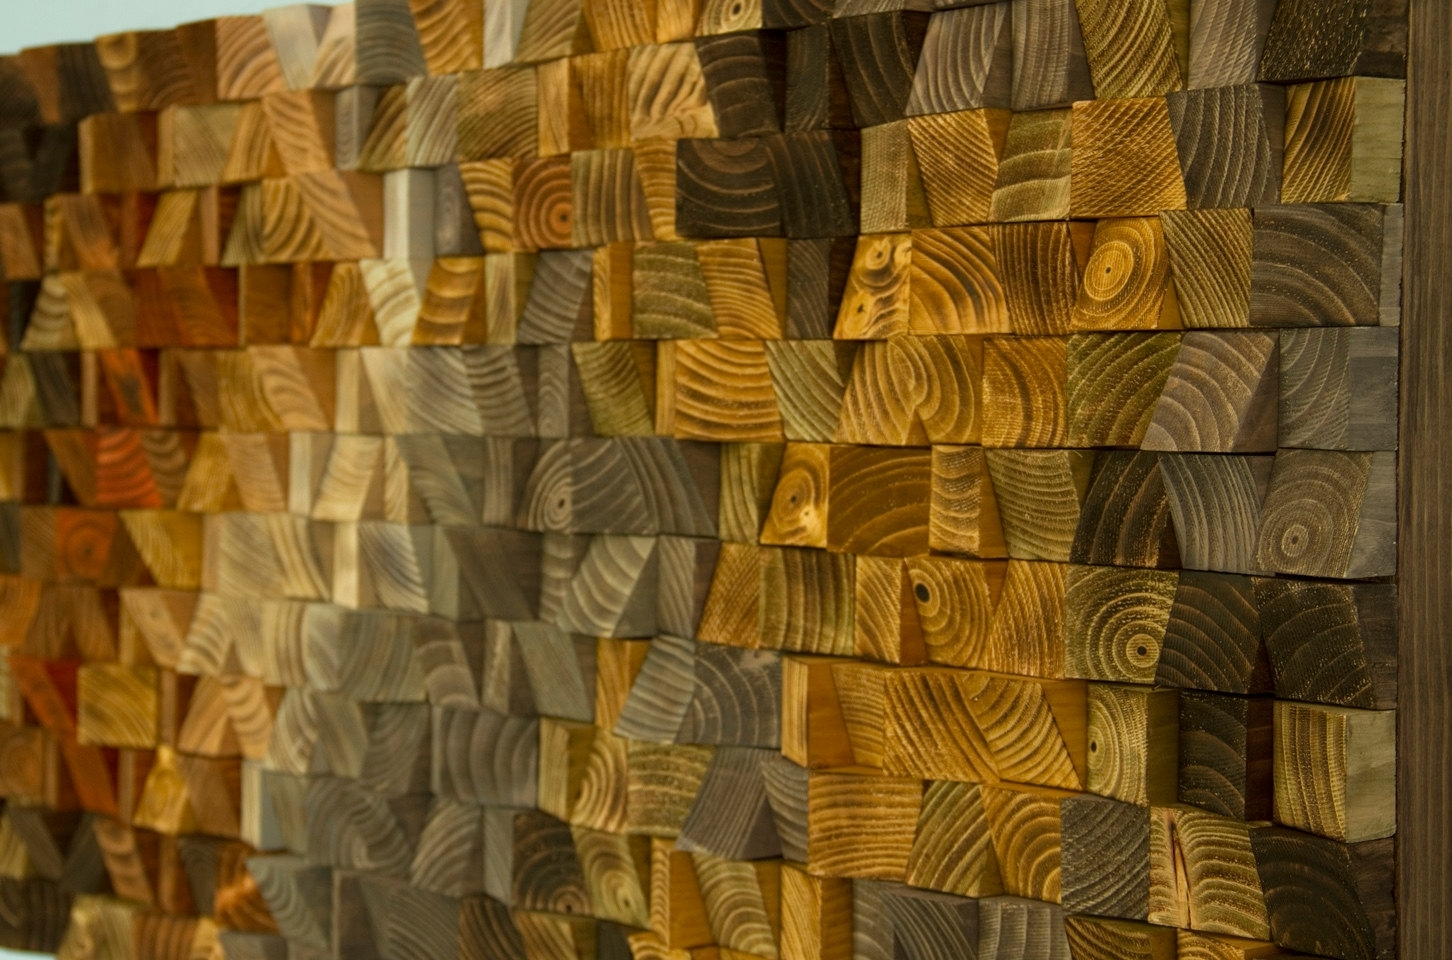 Rustic Wood Wall Art, Wood Wall Sculpture, Abstract Wood Art Mosaic With Current Abstract Mosaic Wall Art (View 18 of 20)